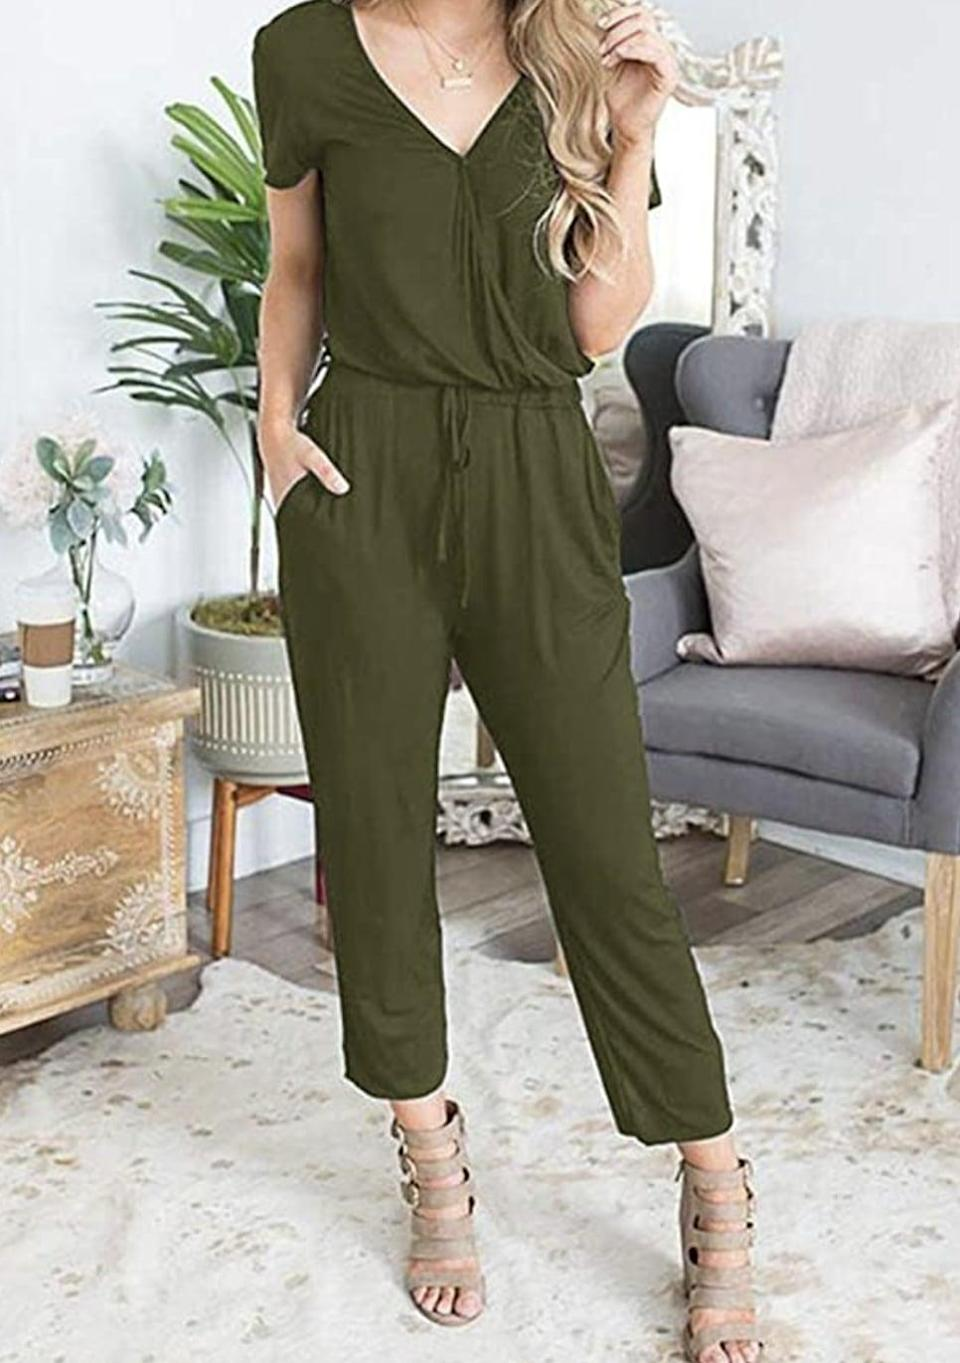 <p>This <span>Pretty Garden V-Neck Short Sleeve Jumpsuit</span> ($24) is designed for a relaxed fit, but you'll still look put-together whether you wear it out to a work happy hour, to lounge around the apartment or to take Zoom calls at home. It also features pockets for extra convenience.</p>